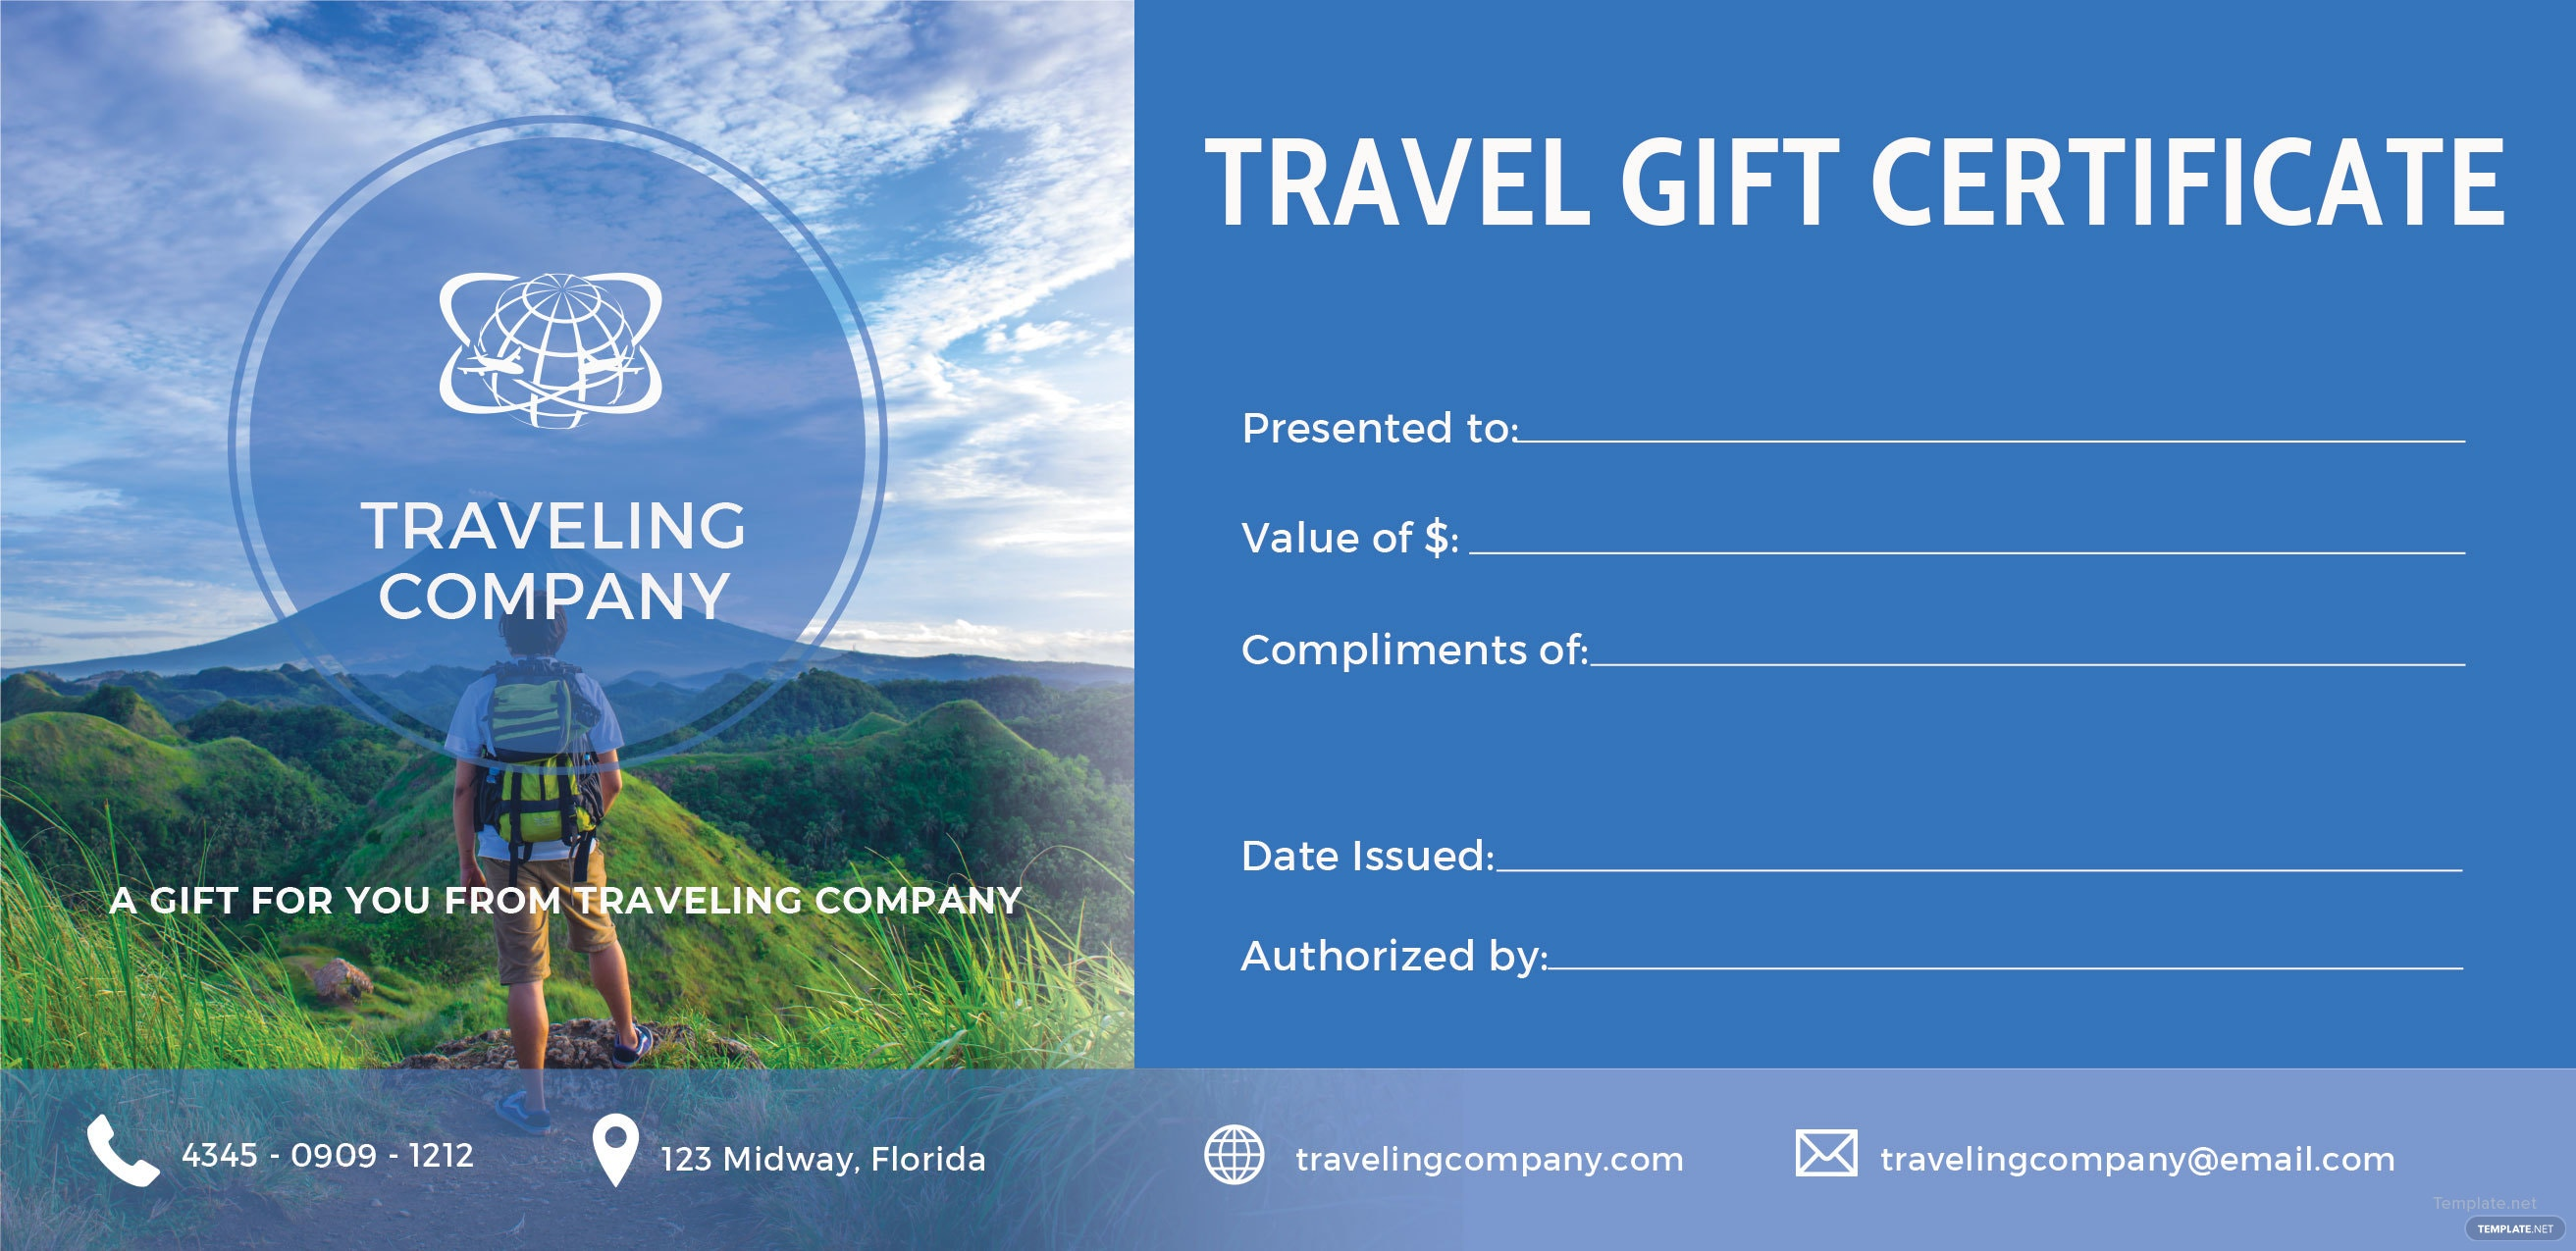 Free Travel Gift Certificate Template in Adobe Illustrator ...